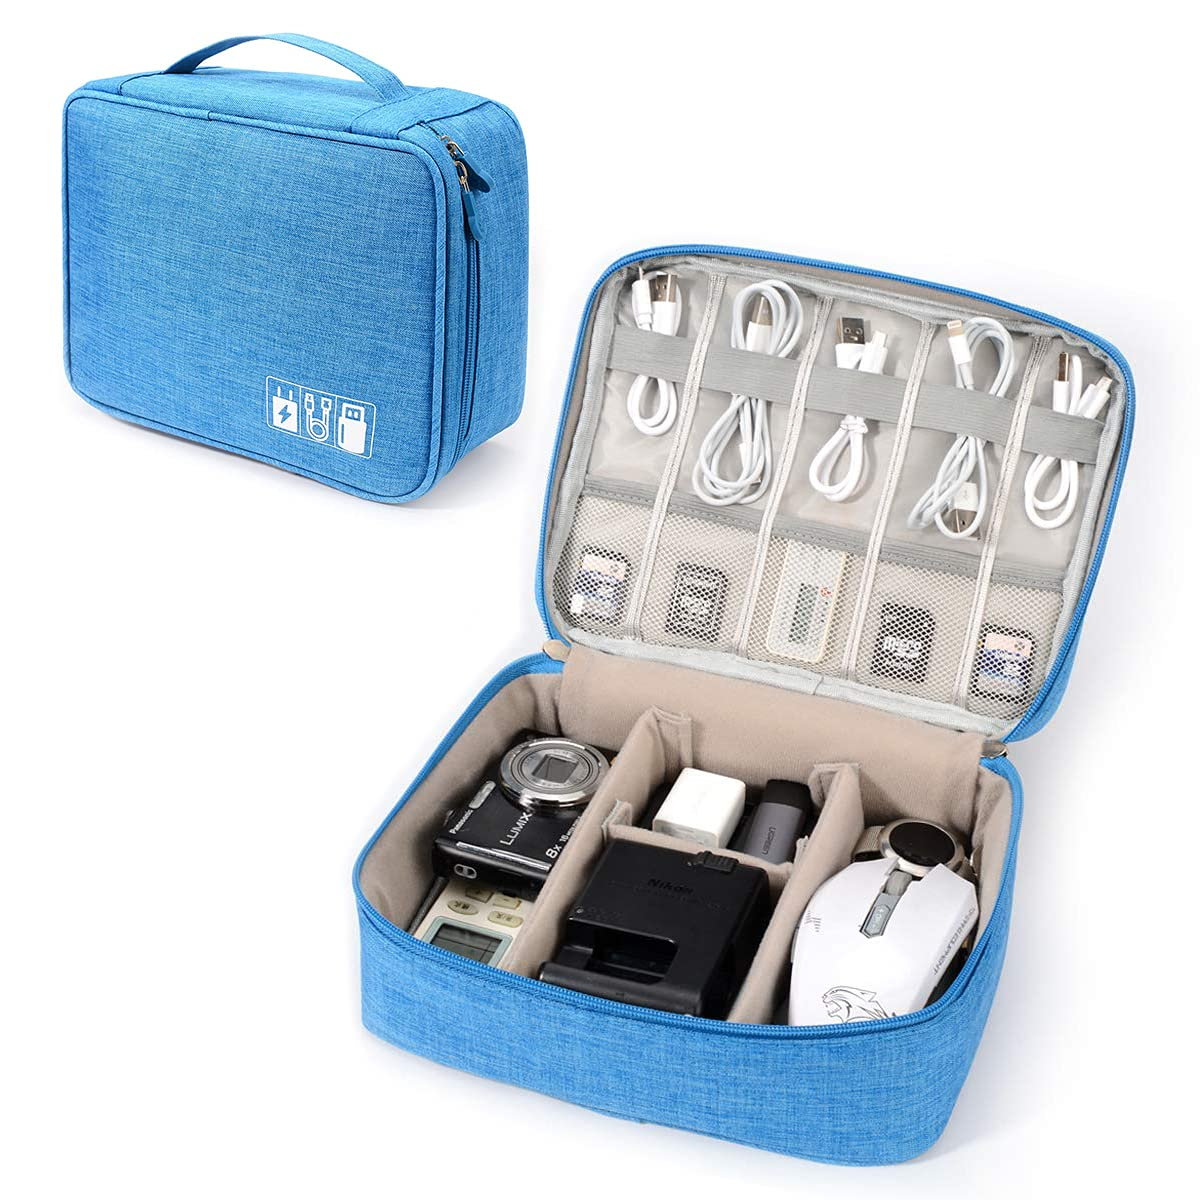 Electronic Organizer Travel Universal Cable Organizer Electronics Accessories Storage Bag Gadget Gear Cases for iPad Mini, Kindle, Smartphone, Cable, Charger, Power Bank, USB, SD Card (Sky Blue)